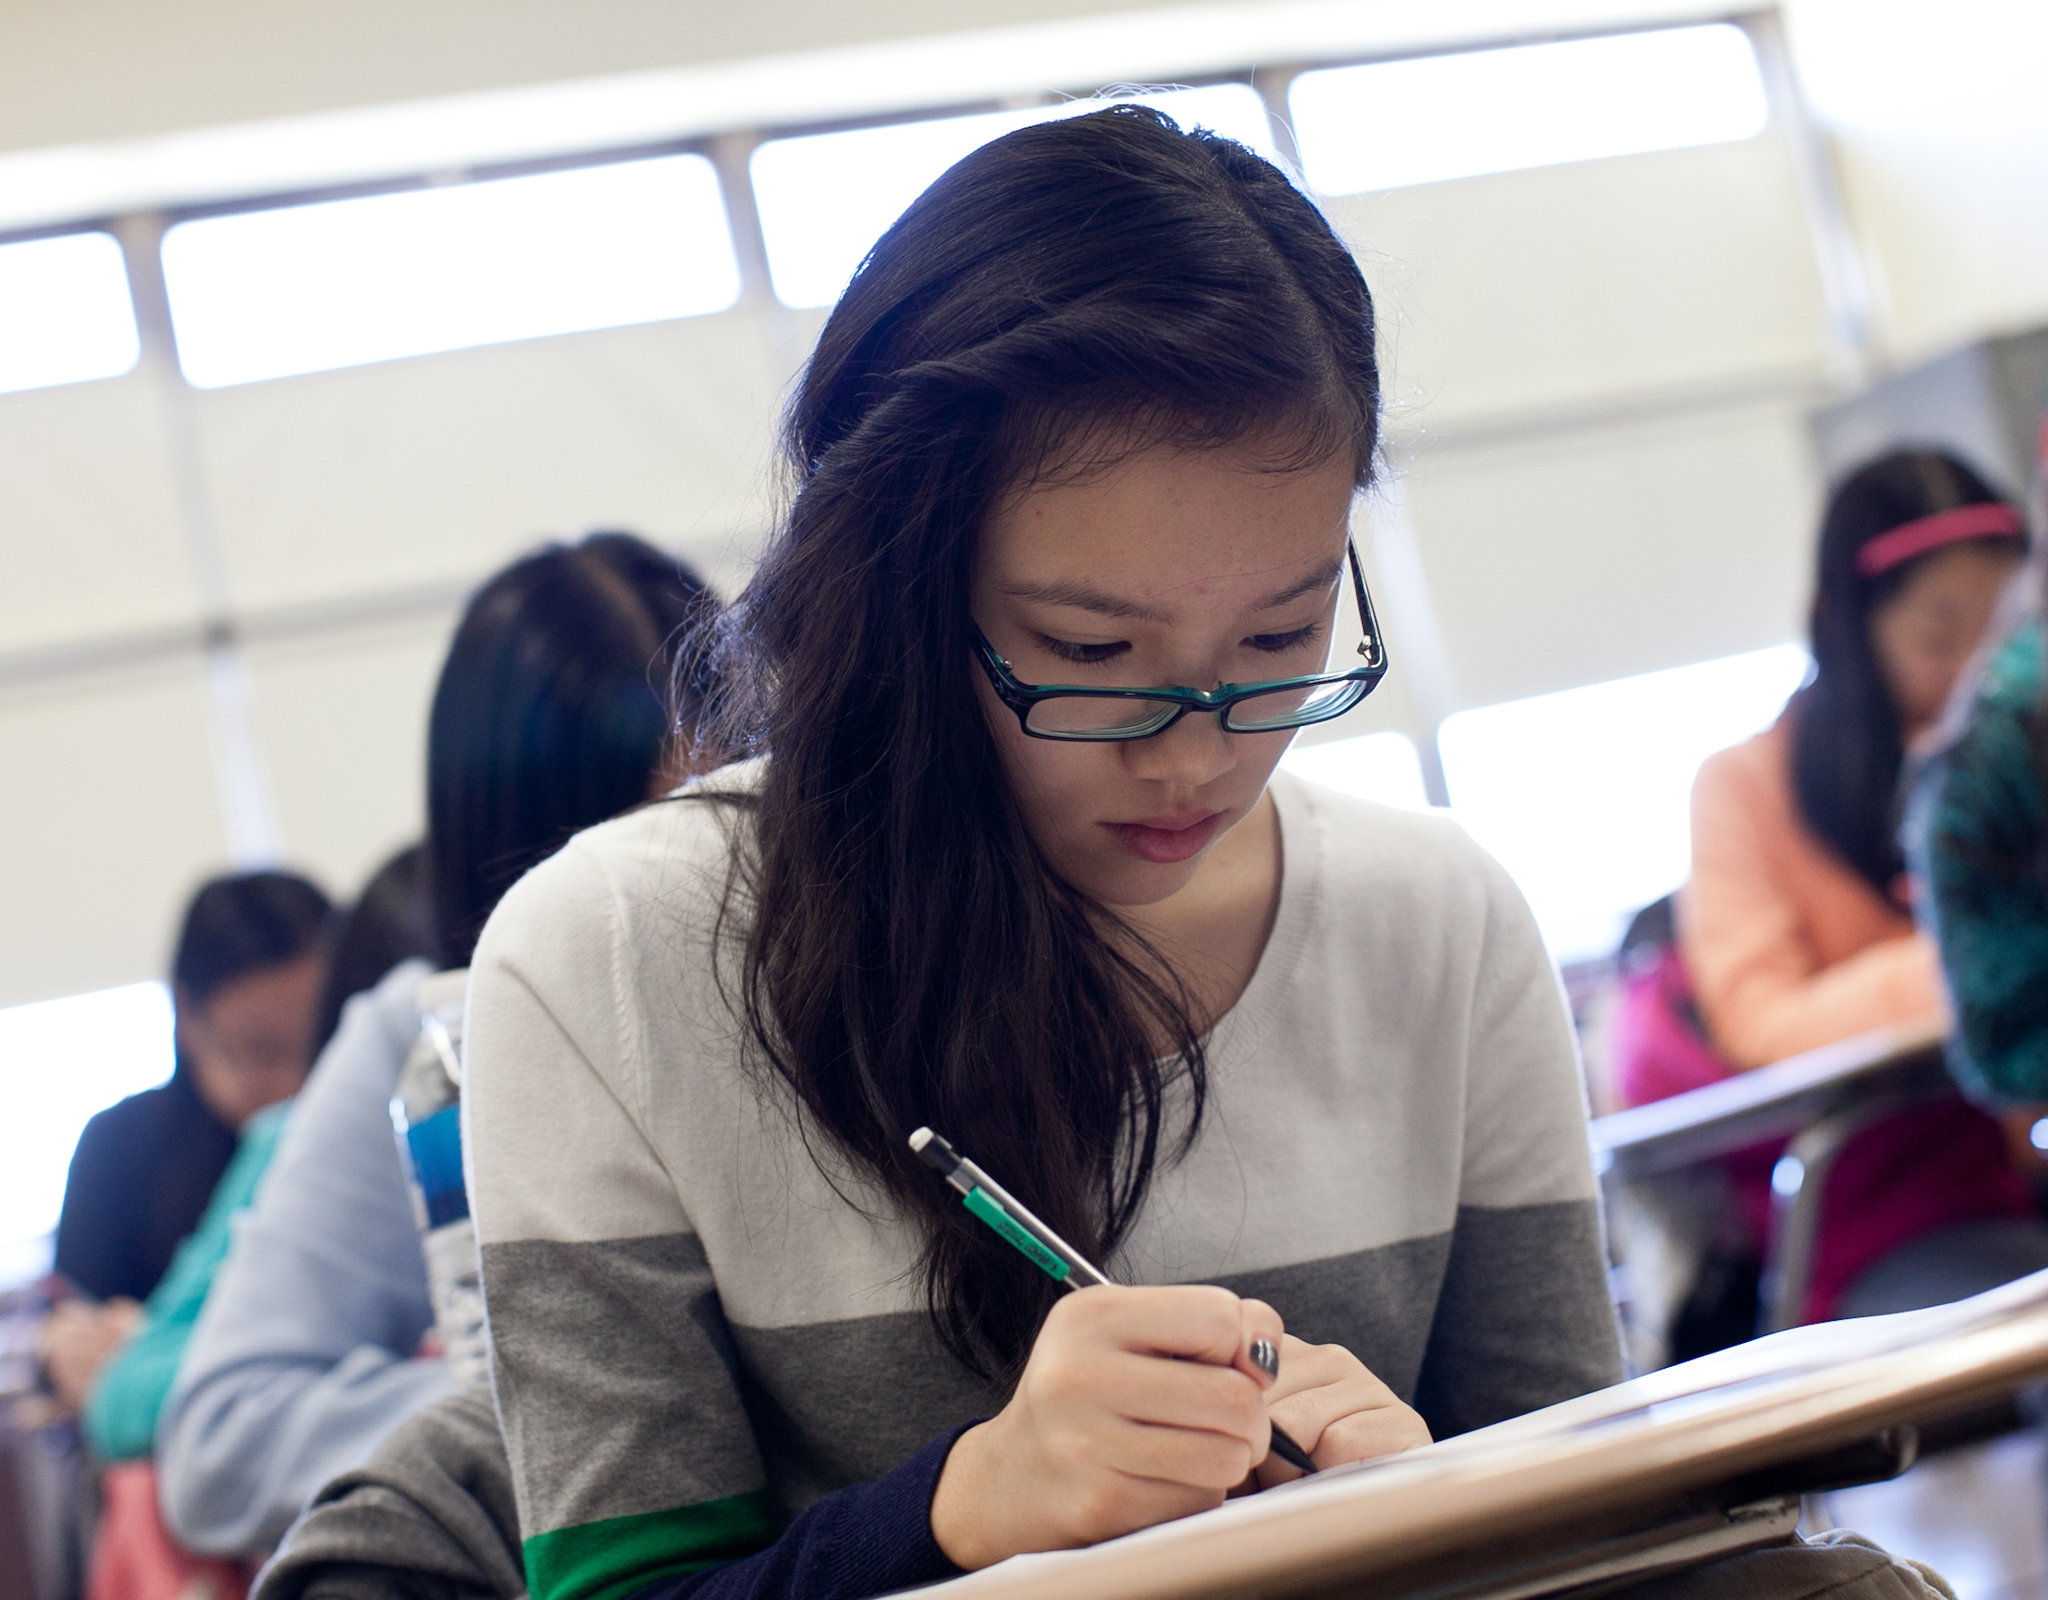 Asians Success In High School Admissions Tests Seen As Issue By Some